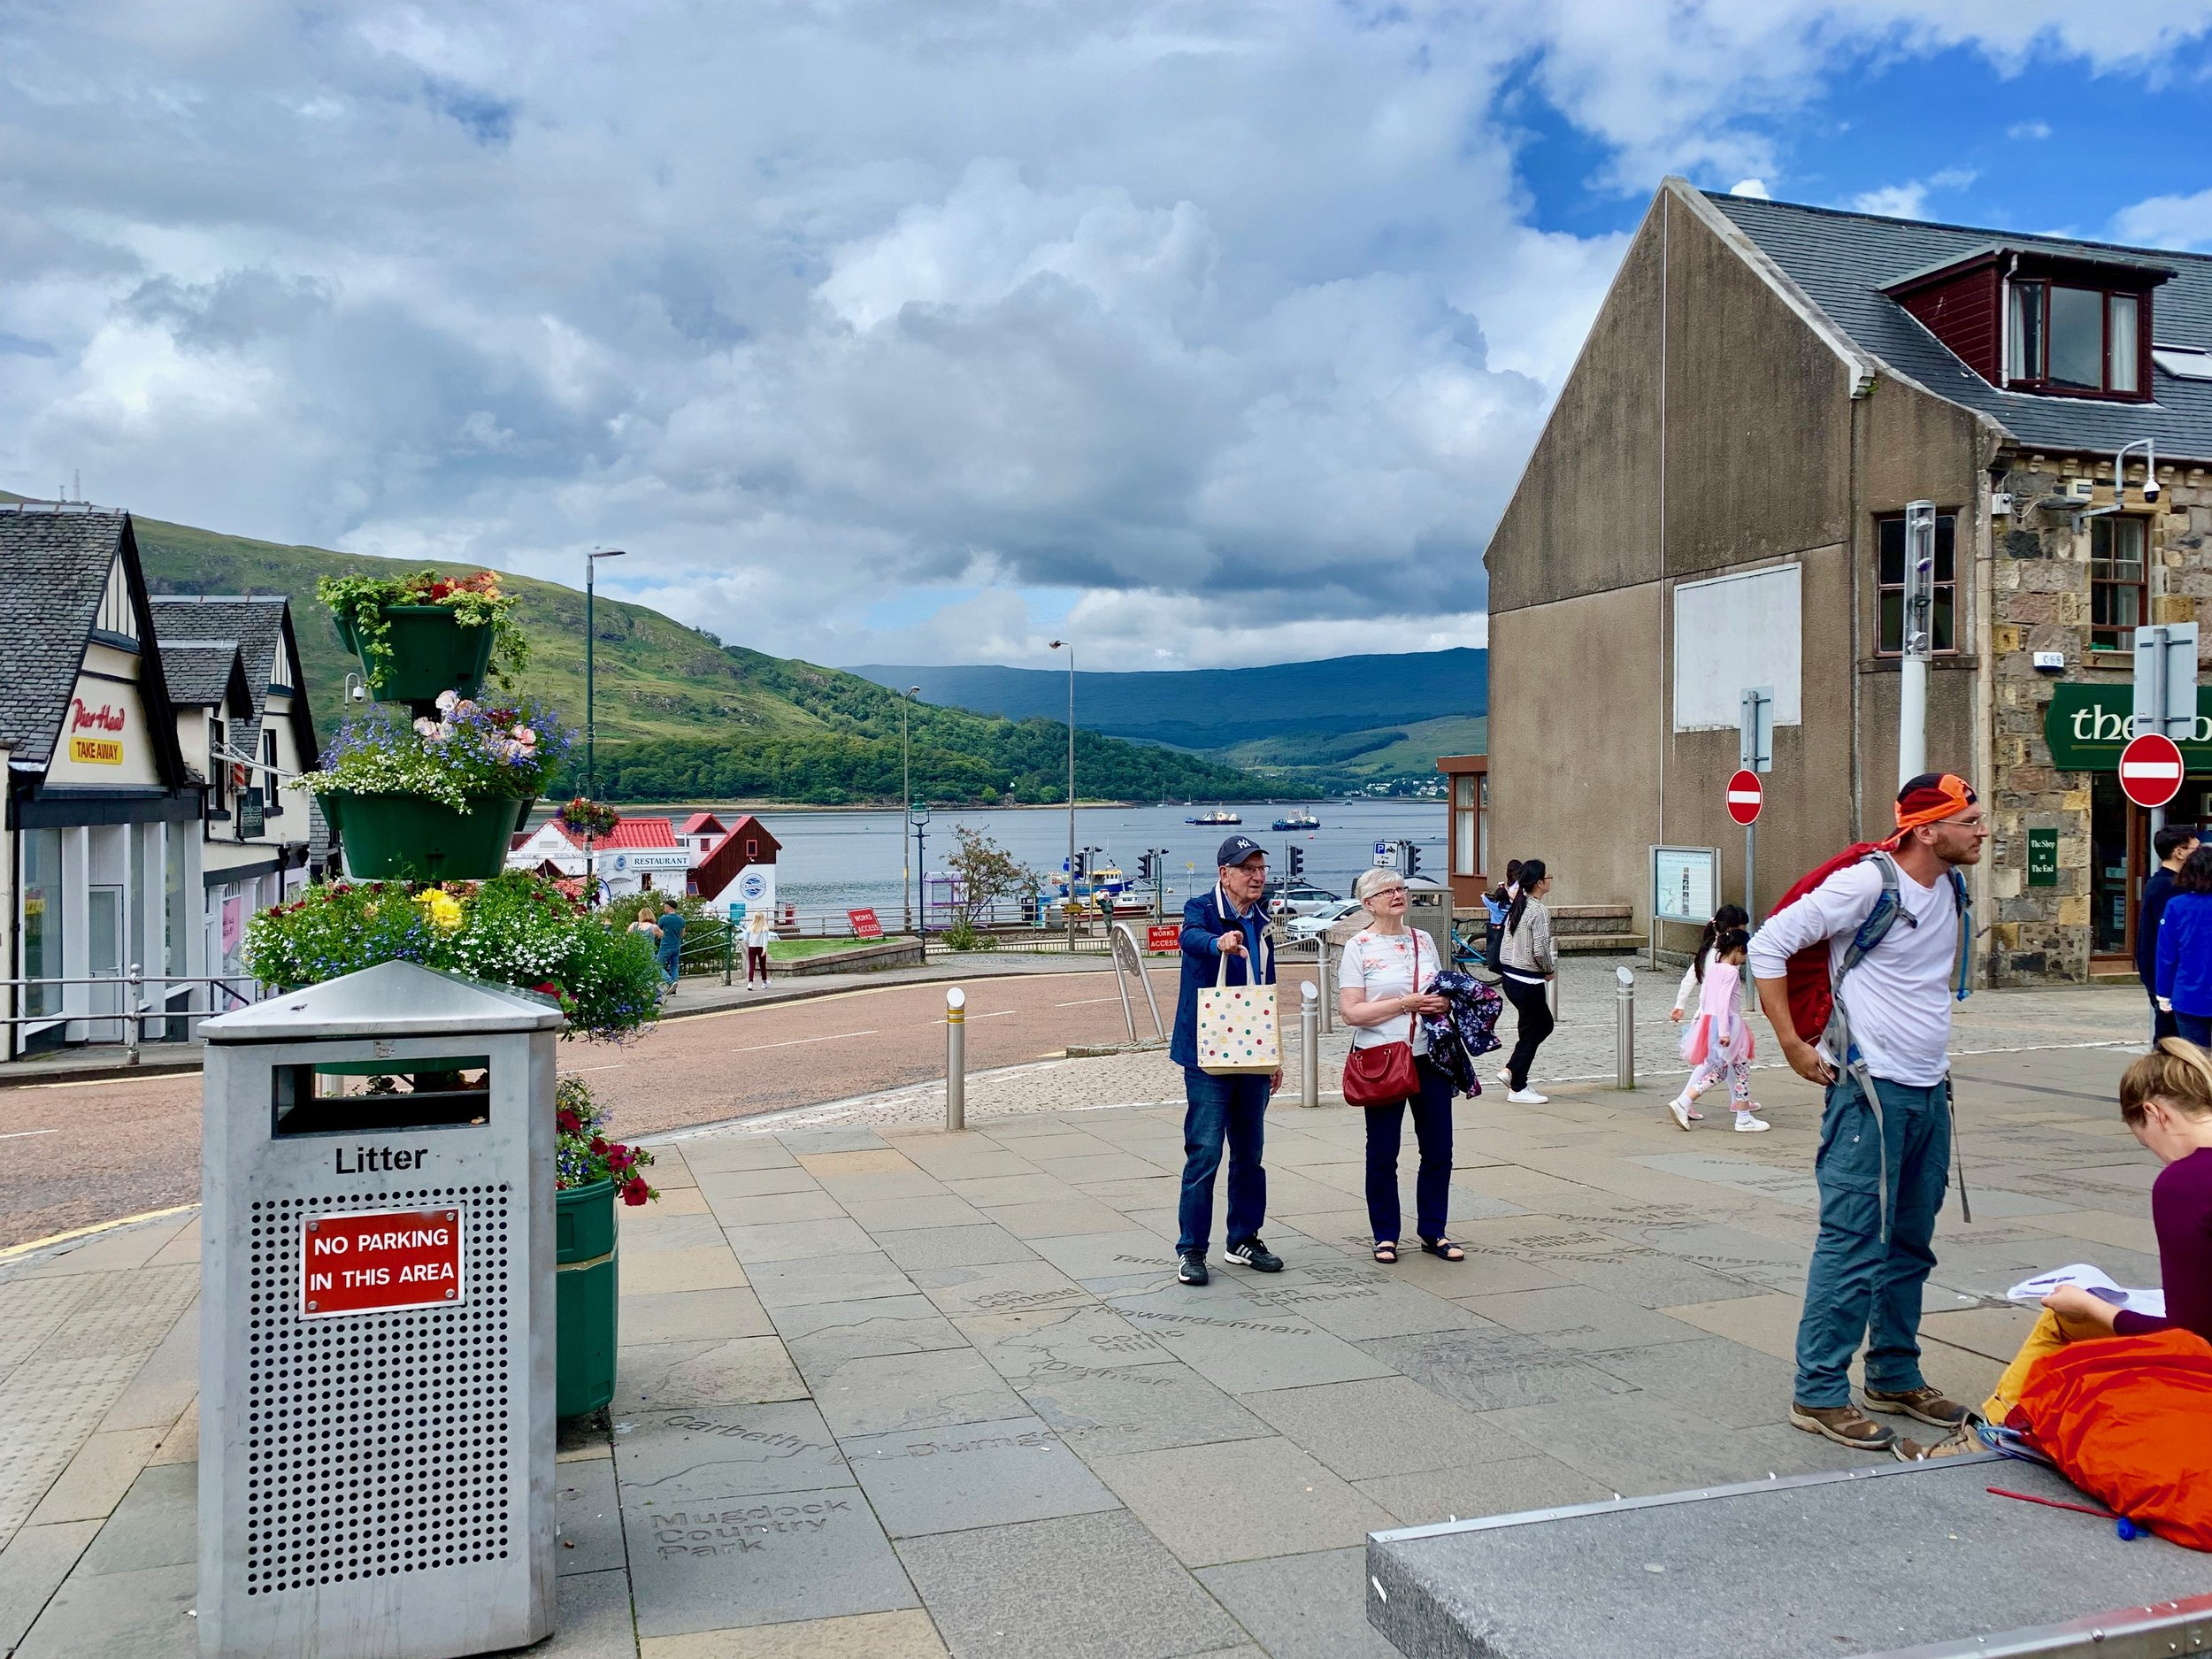 Fort William is a delightful place, even more so when it is sunny.